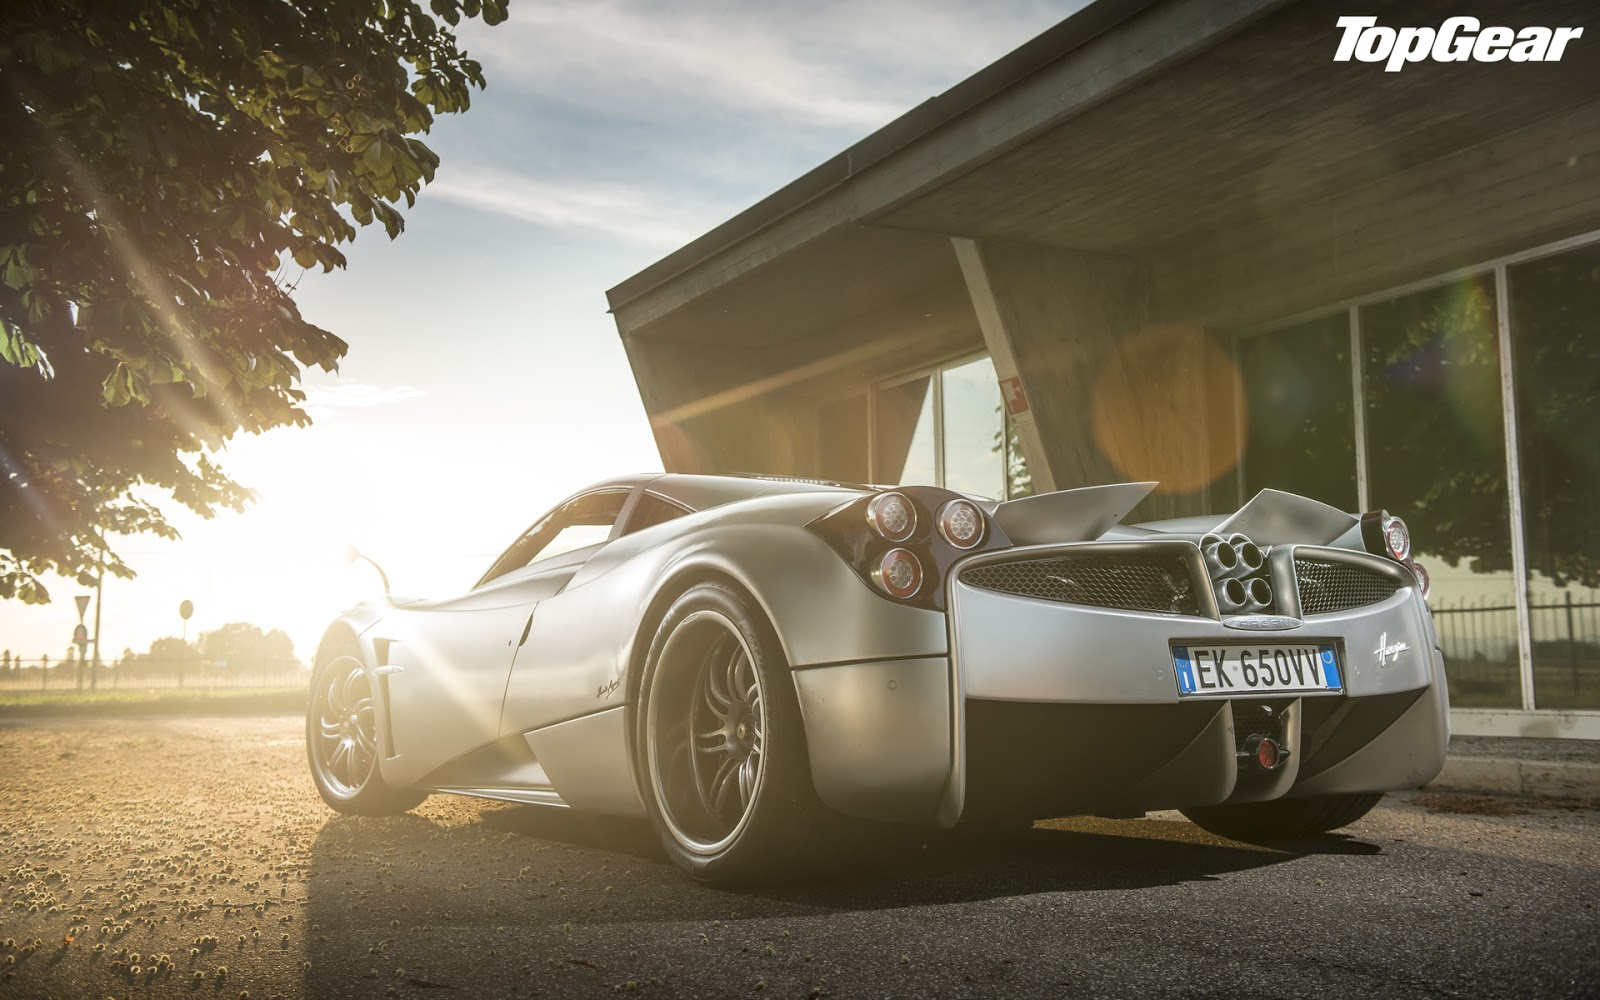 Prototype 0: Top Gear Pagani Huayra complete episode